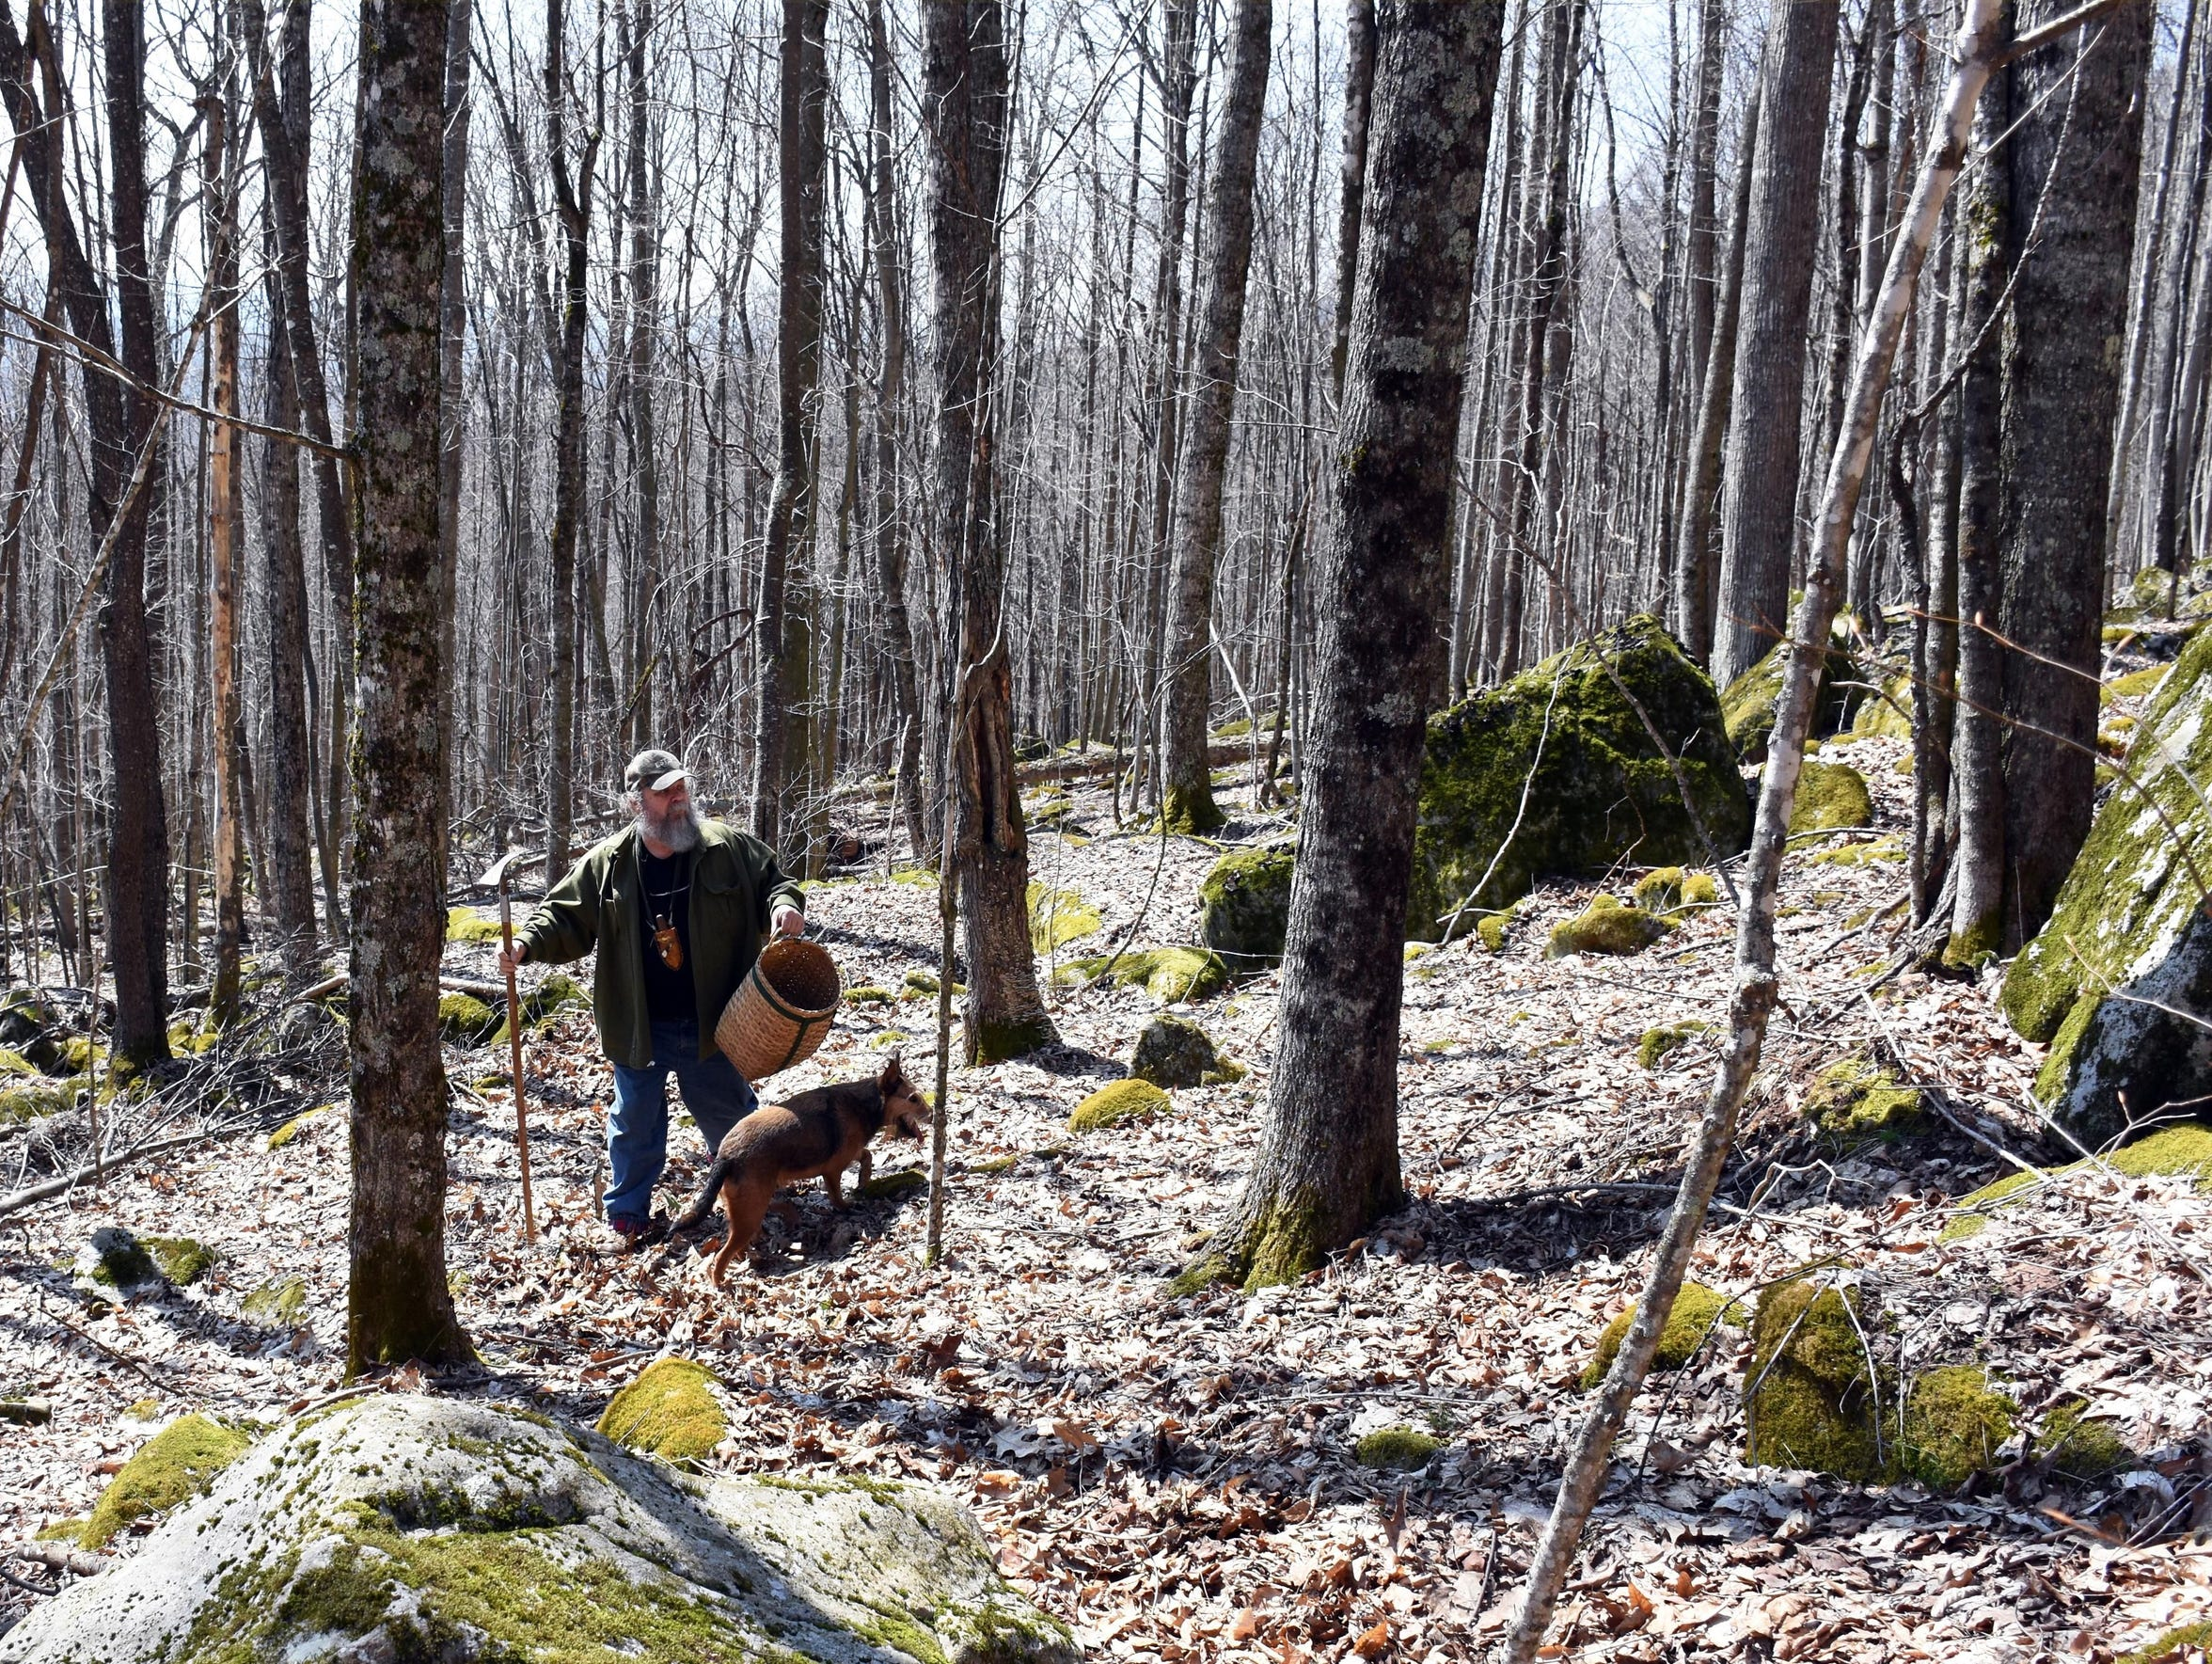 Jay Marion of Verona, Virginia, and his dog Abby foraging